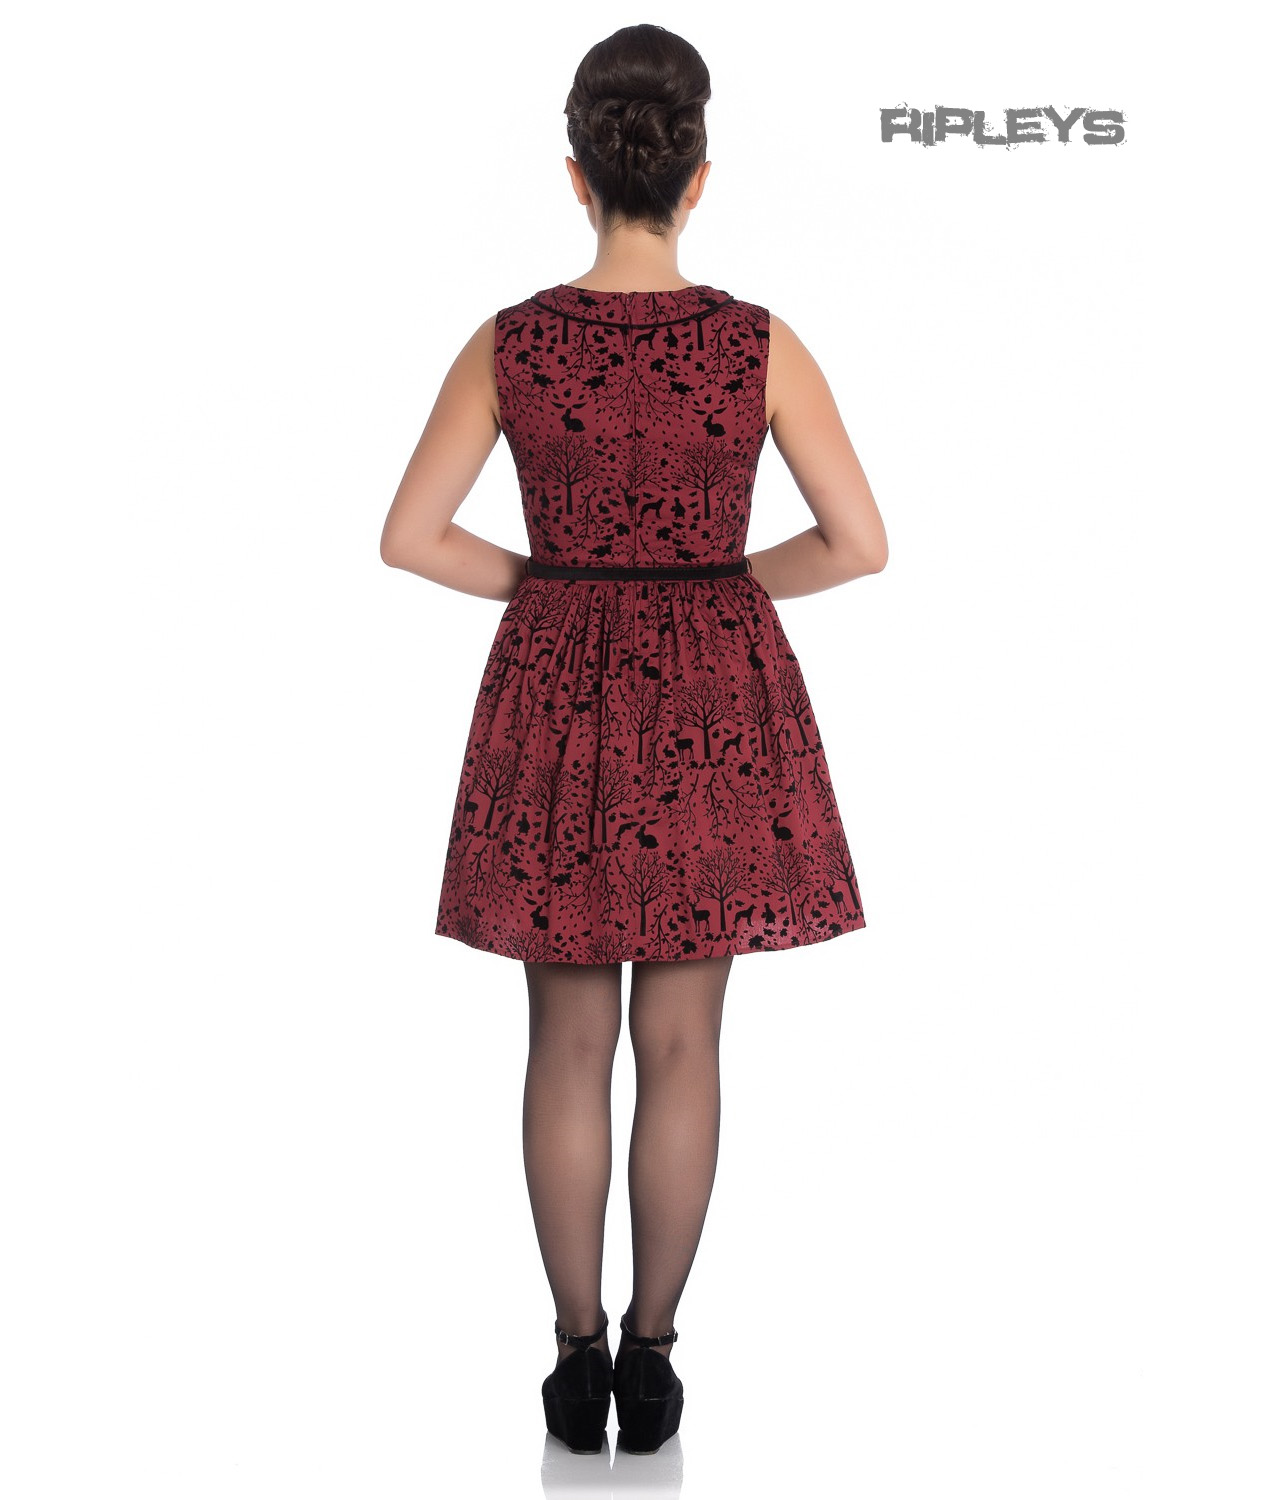 Hell-Bunny-50s-Mini-Skater-Dress-Woodland-Trees-SHERWOOD-Black-Red-All-Sizes thumbnail 4